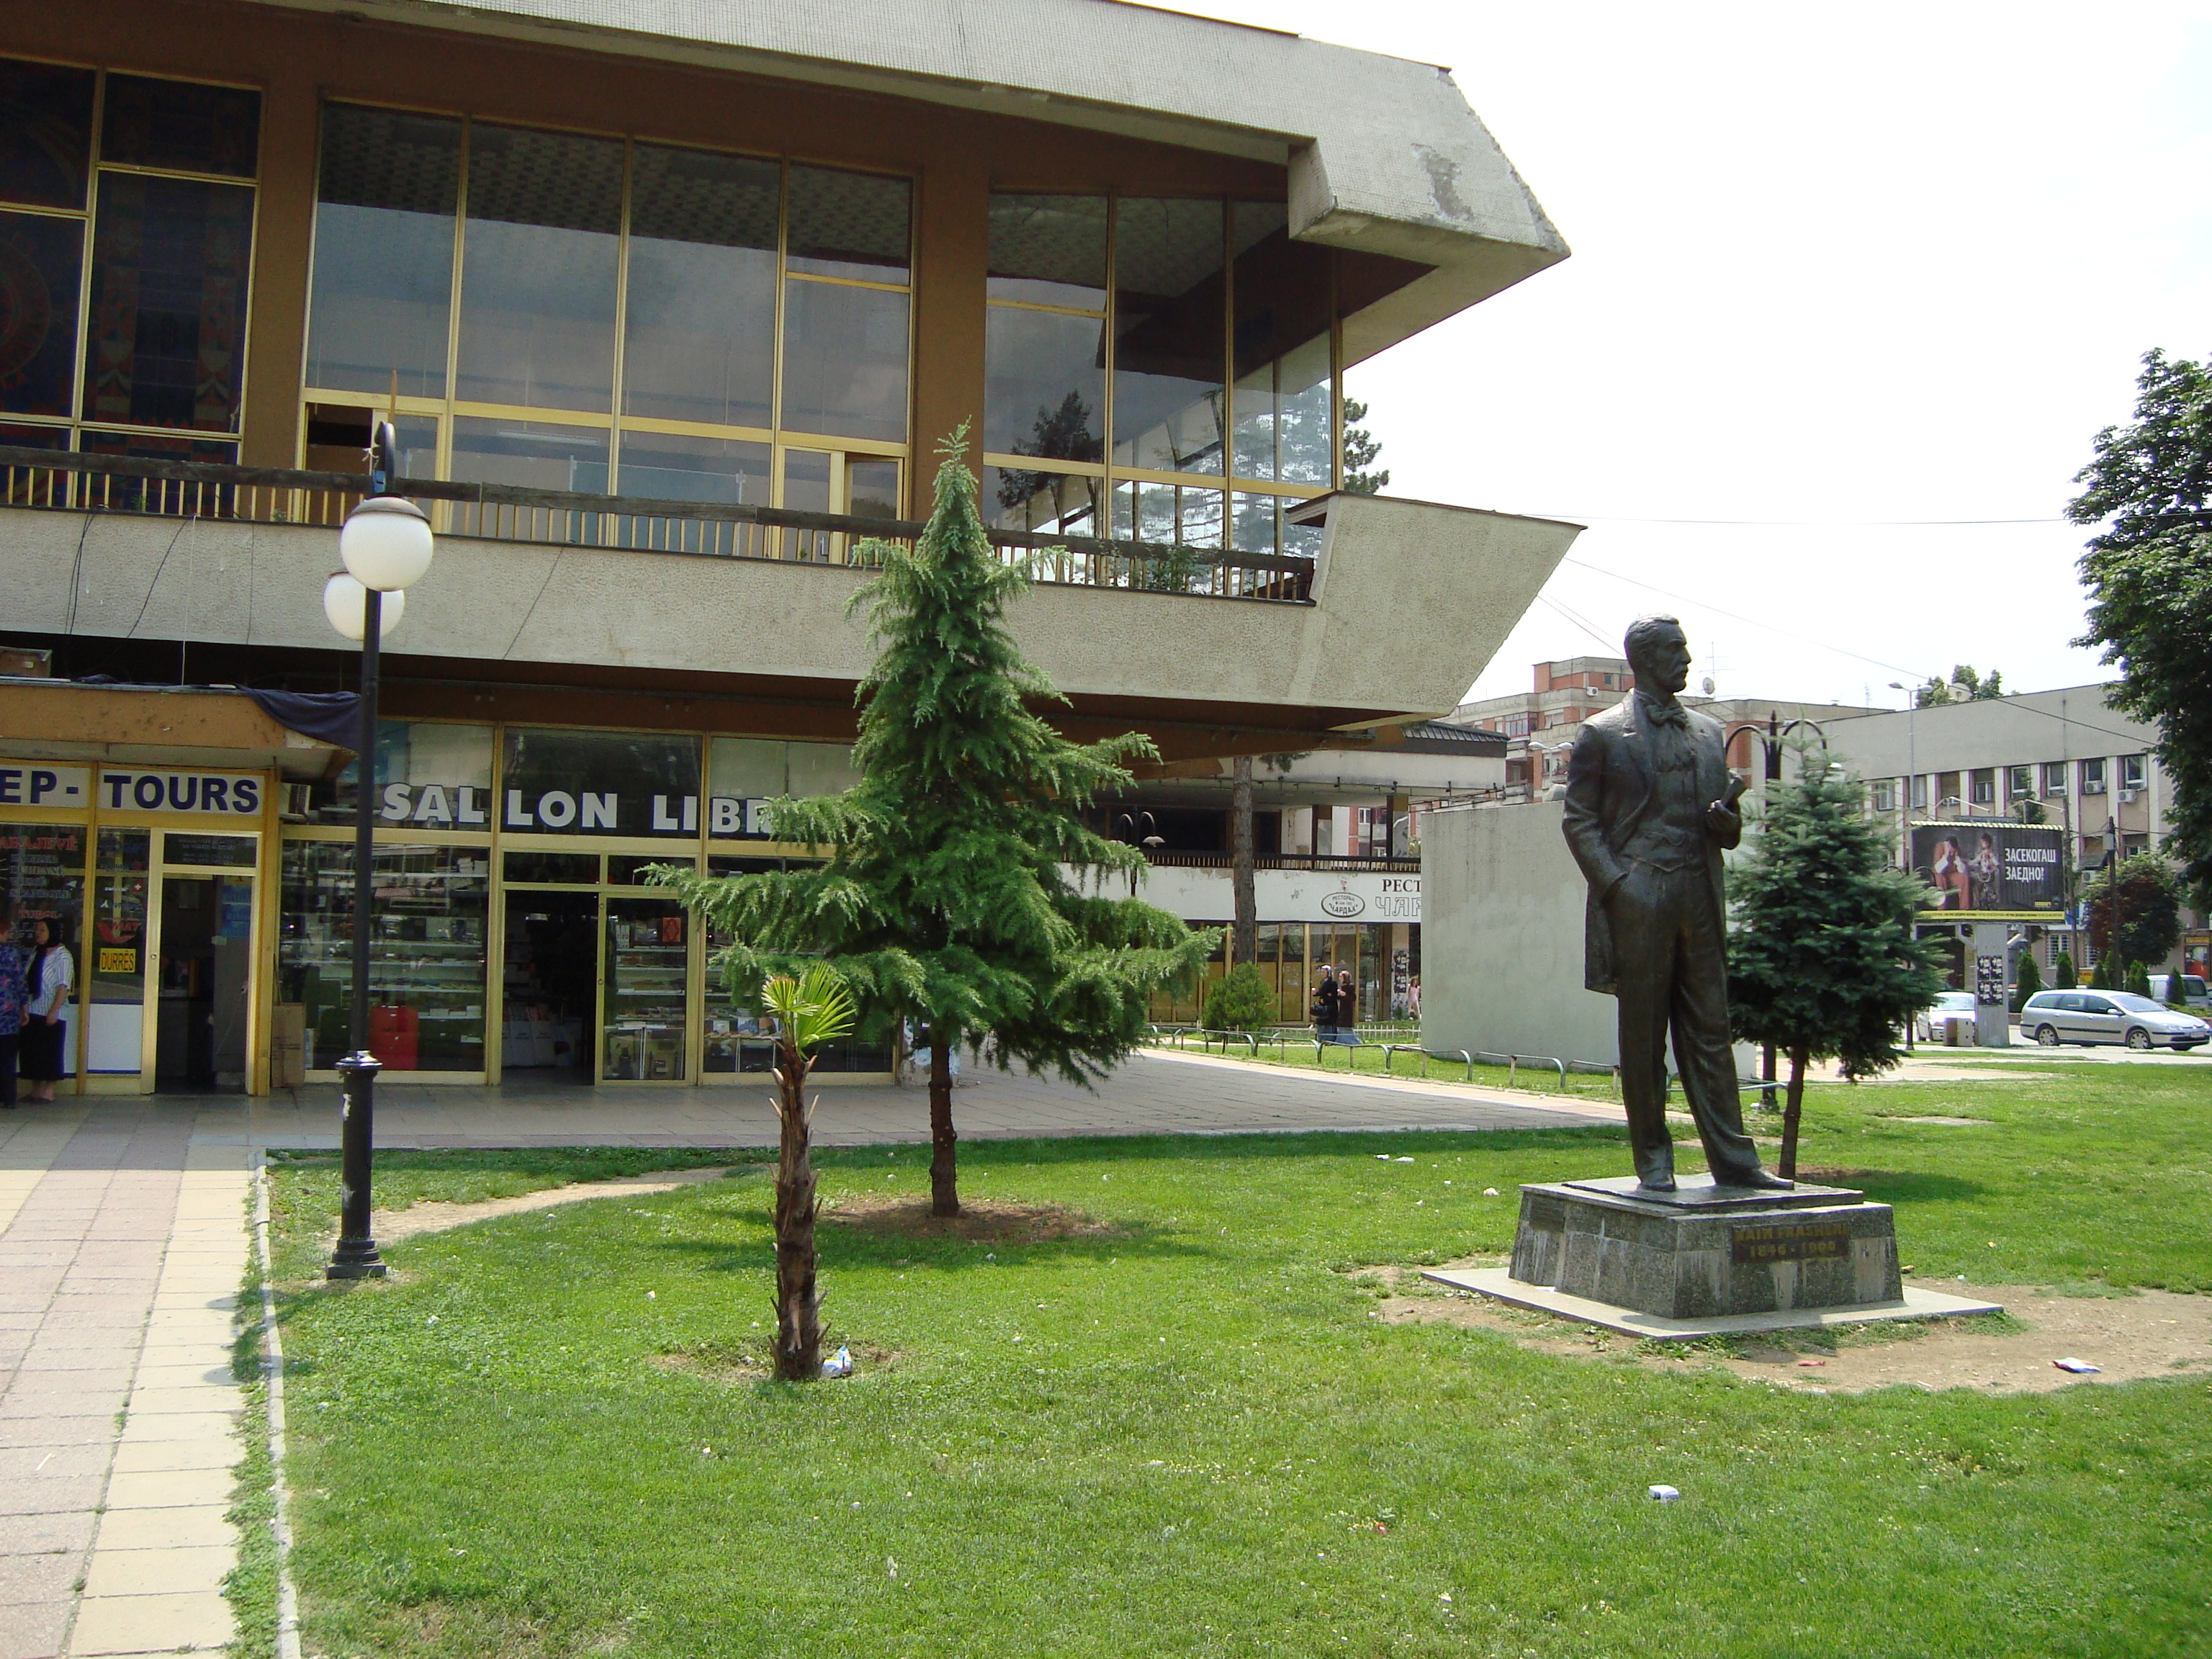 File:The park in front of the culture club in Tetovo, Macedonia.JPG ...